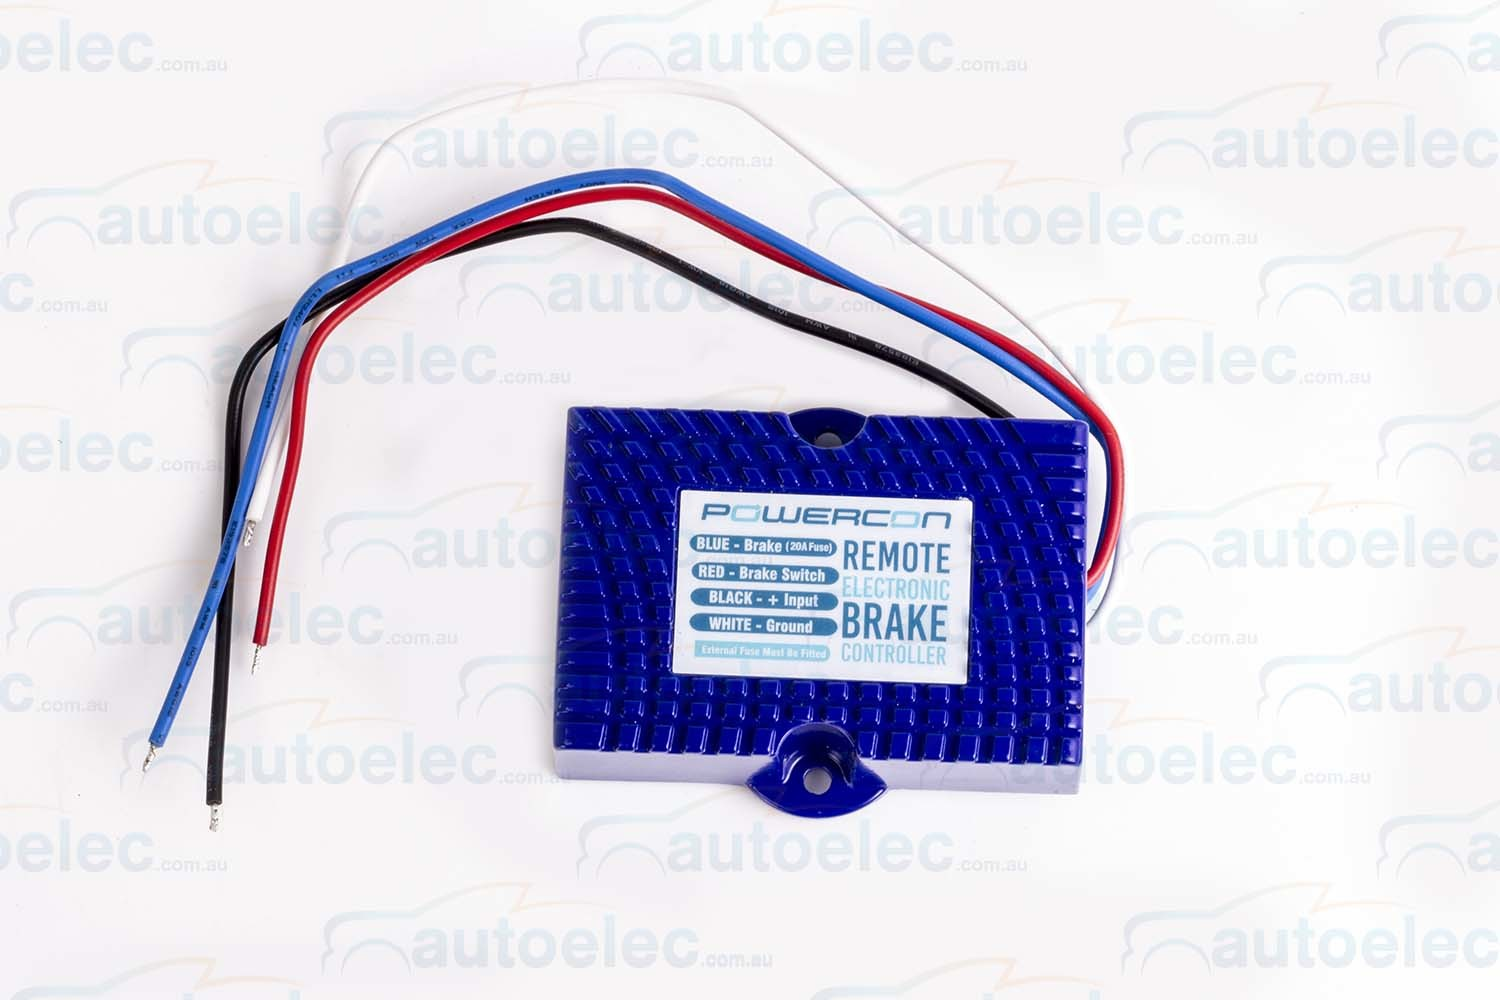 hight resolution of remote head mount 12v electric trailer brake controller